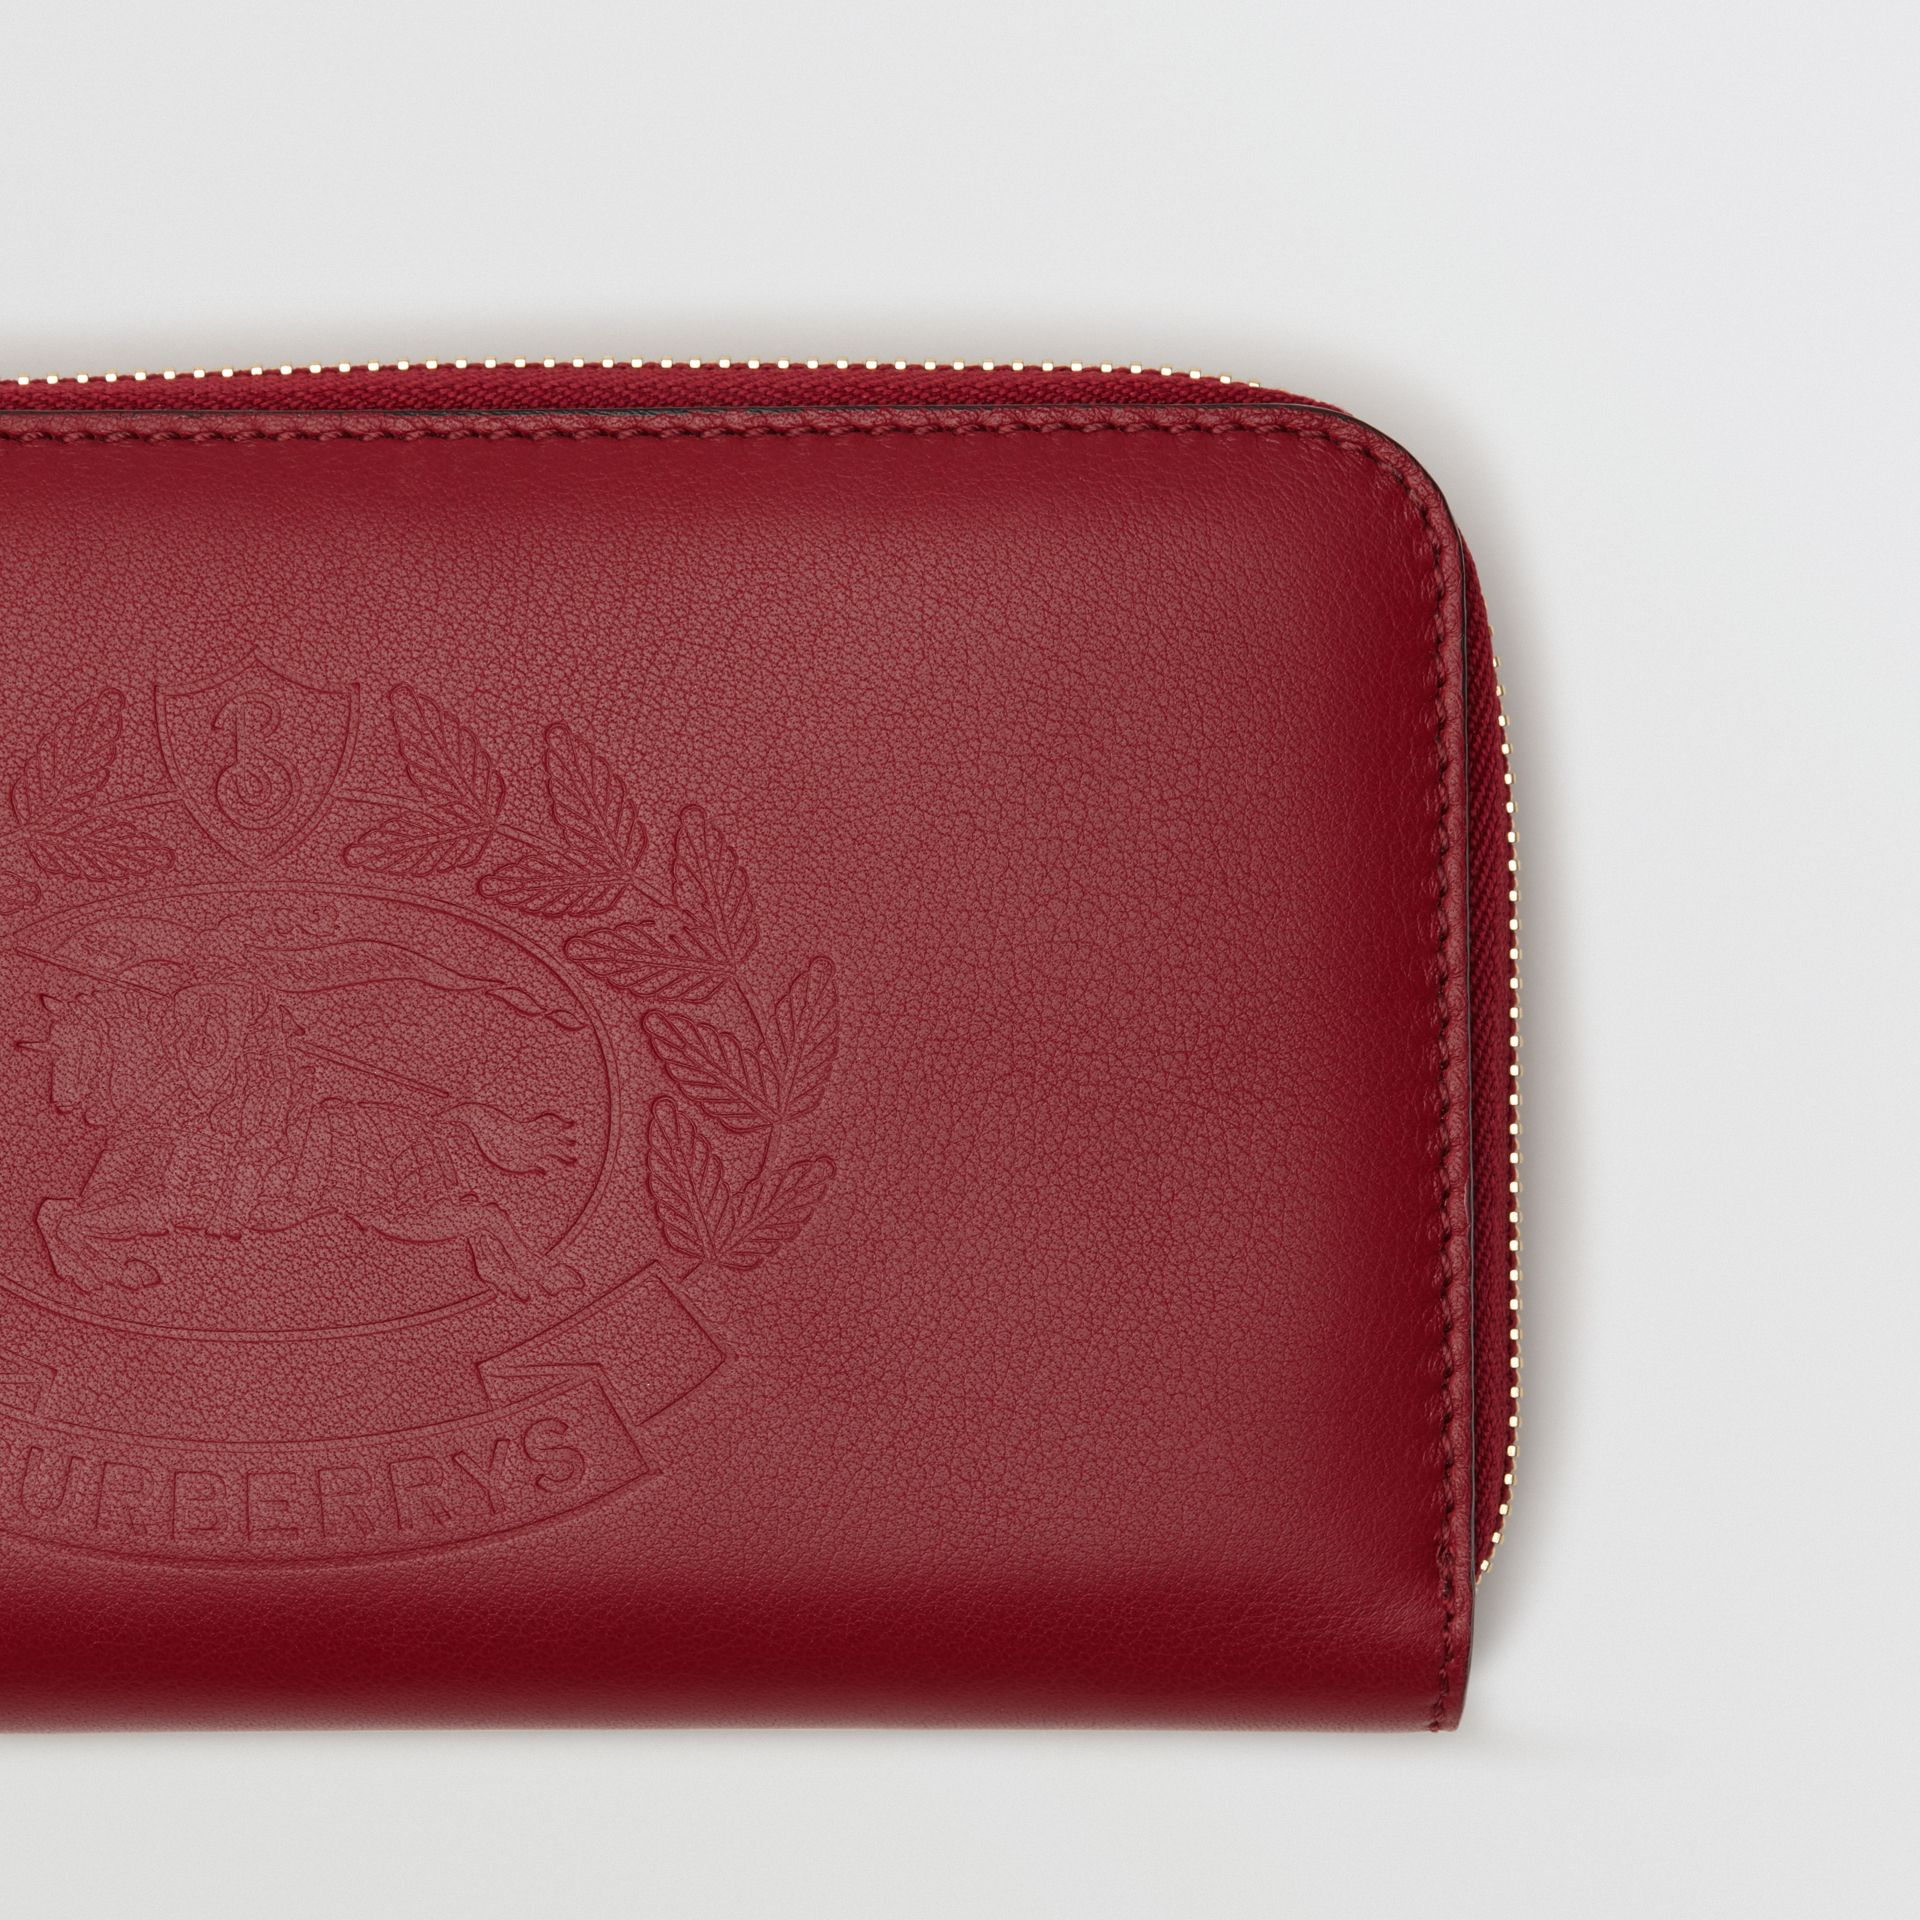 Embossed Crest Two-tone Leather Ziparound Wallet in Crimson - Women | Burberry Canada - gallery image 1